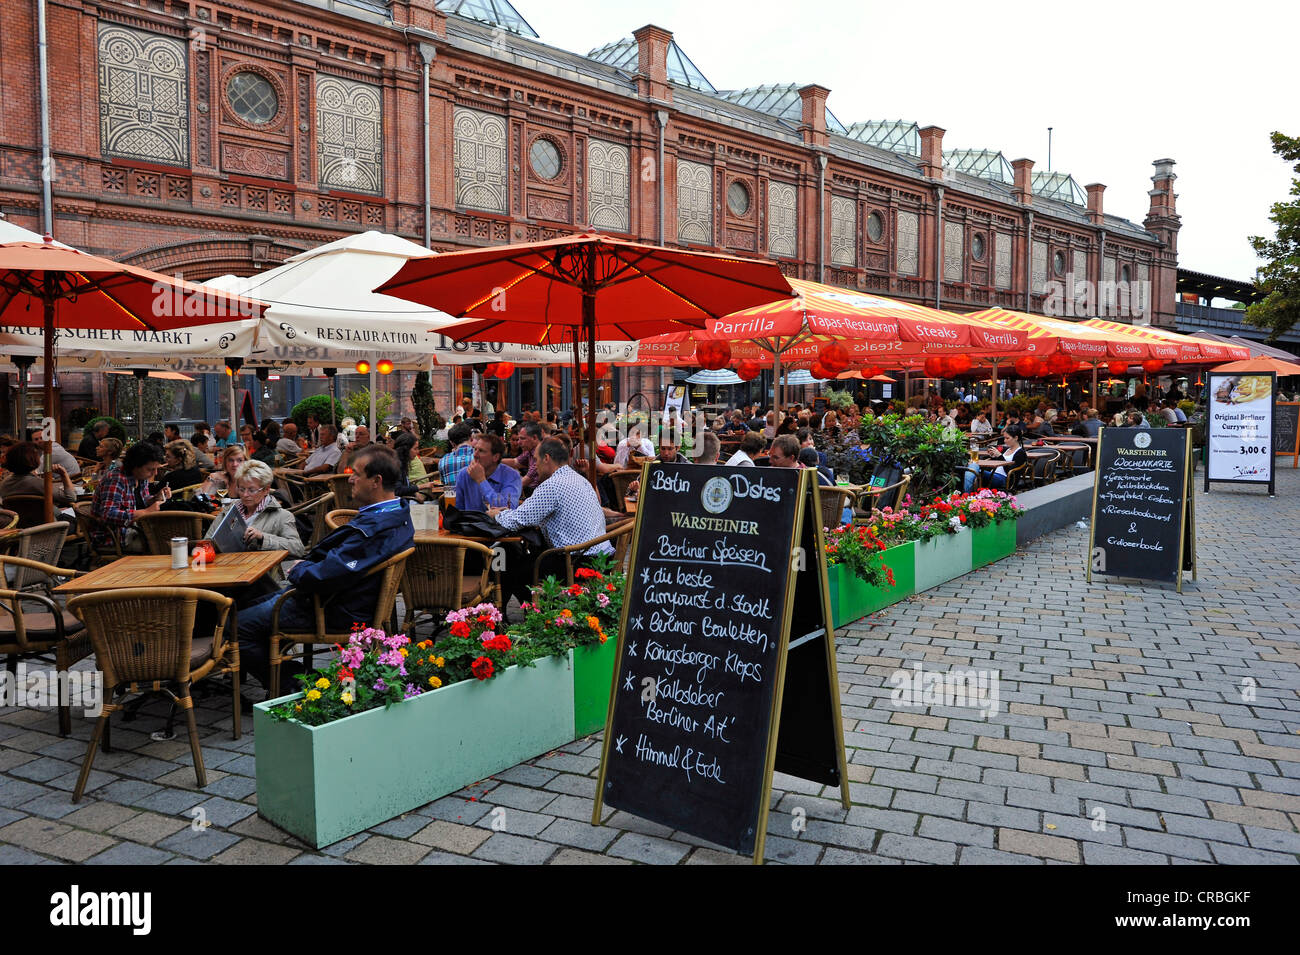 restaurants hackescher markt mitte district berlin germany stock photo royalty free image. Black Bedroom Furniture Sets. Home Design Ideas